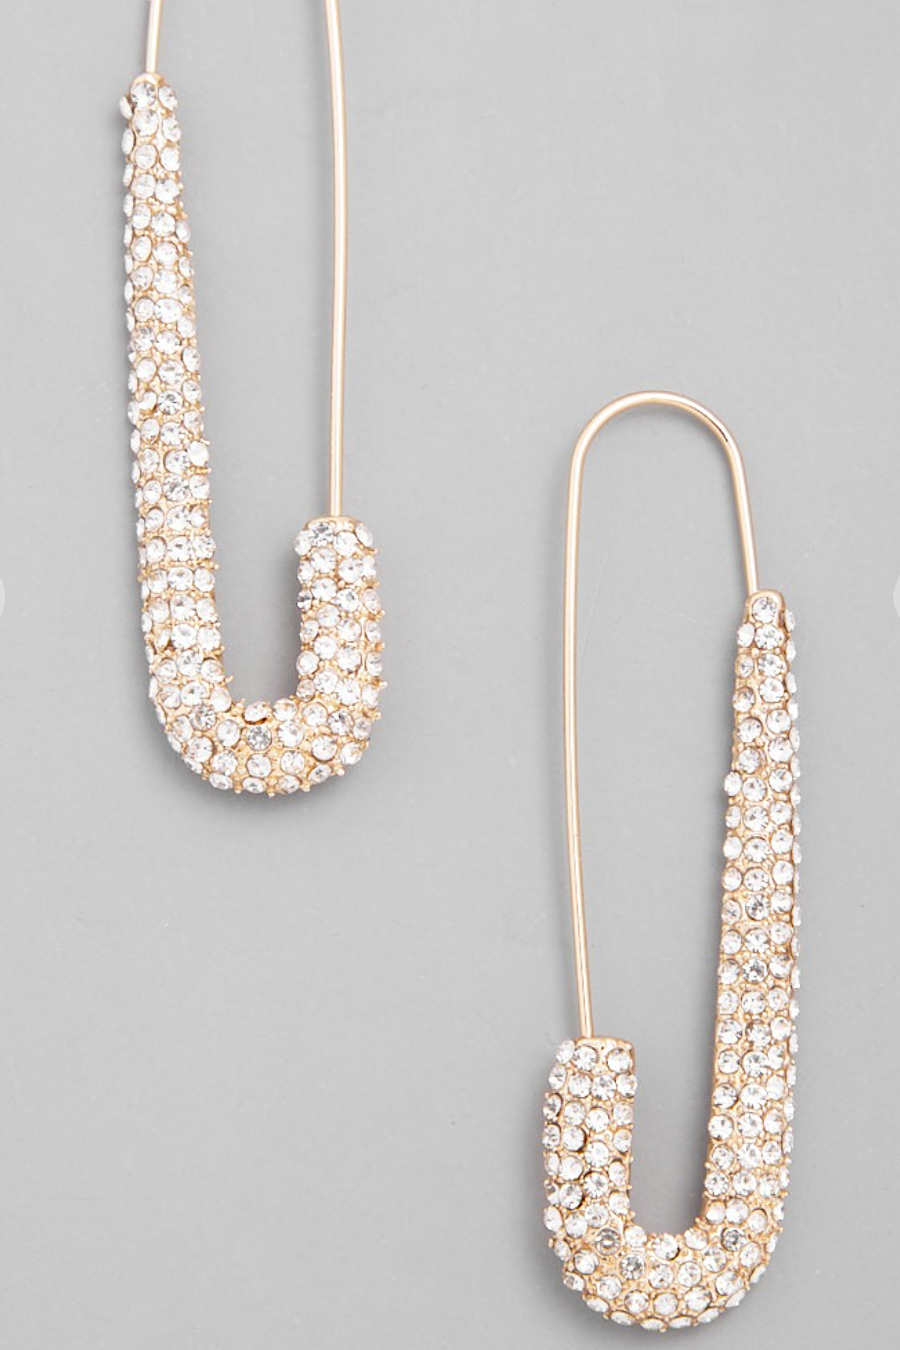 Safety Pin Crystal Earrings in Gold or Silver